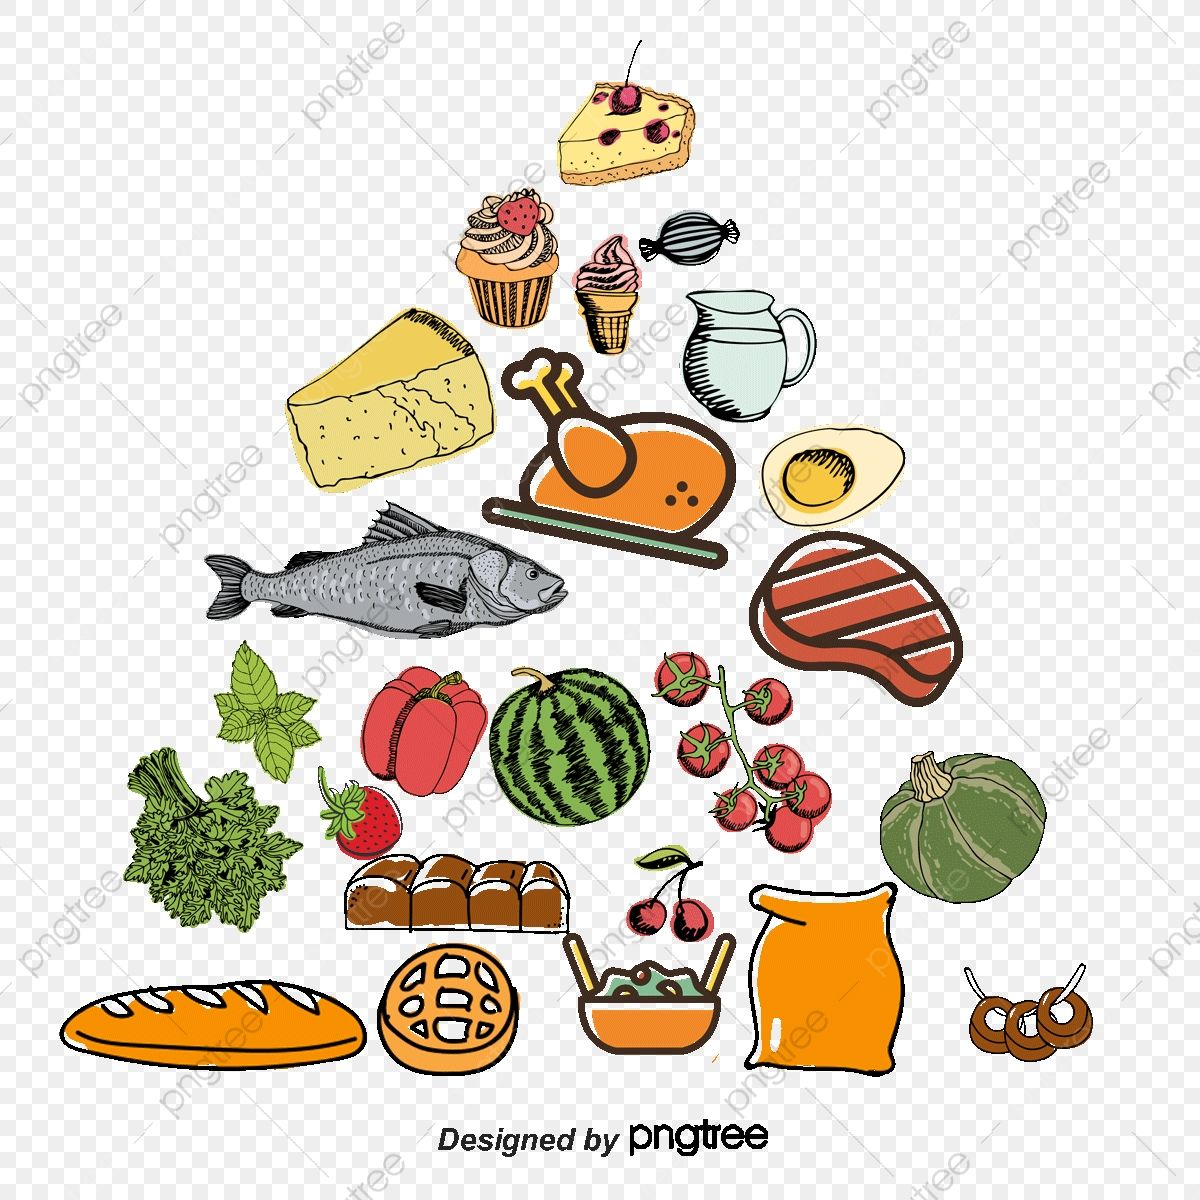 Pin By Elena Invernizzi63 On Schede Didattiche In 2021 Food Pyramid Food Clipart Food Png